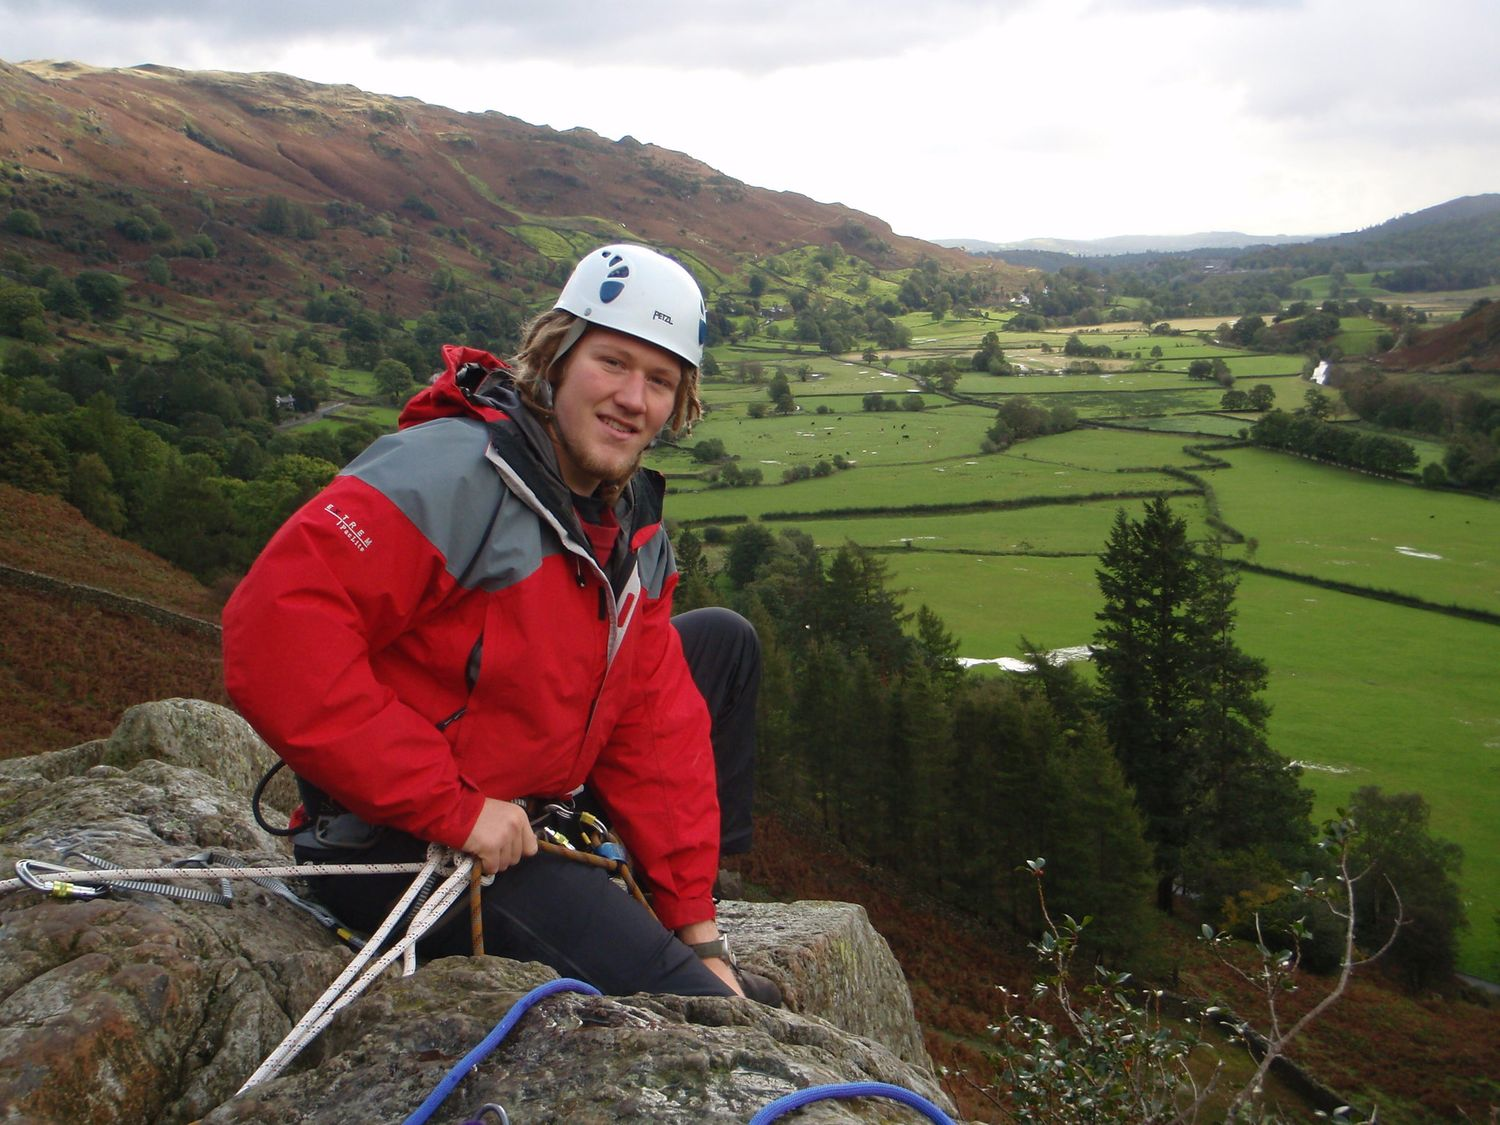 Belaying at the top of a route on a Rock Climbing Instructor course - Chris Ensoll Mountain Guide